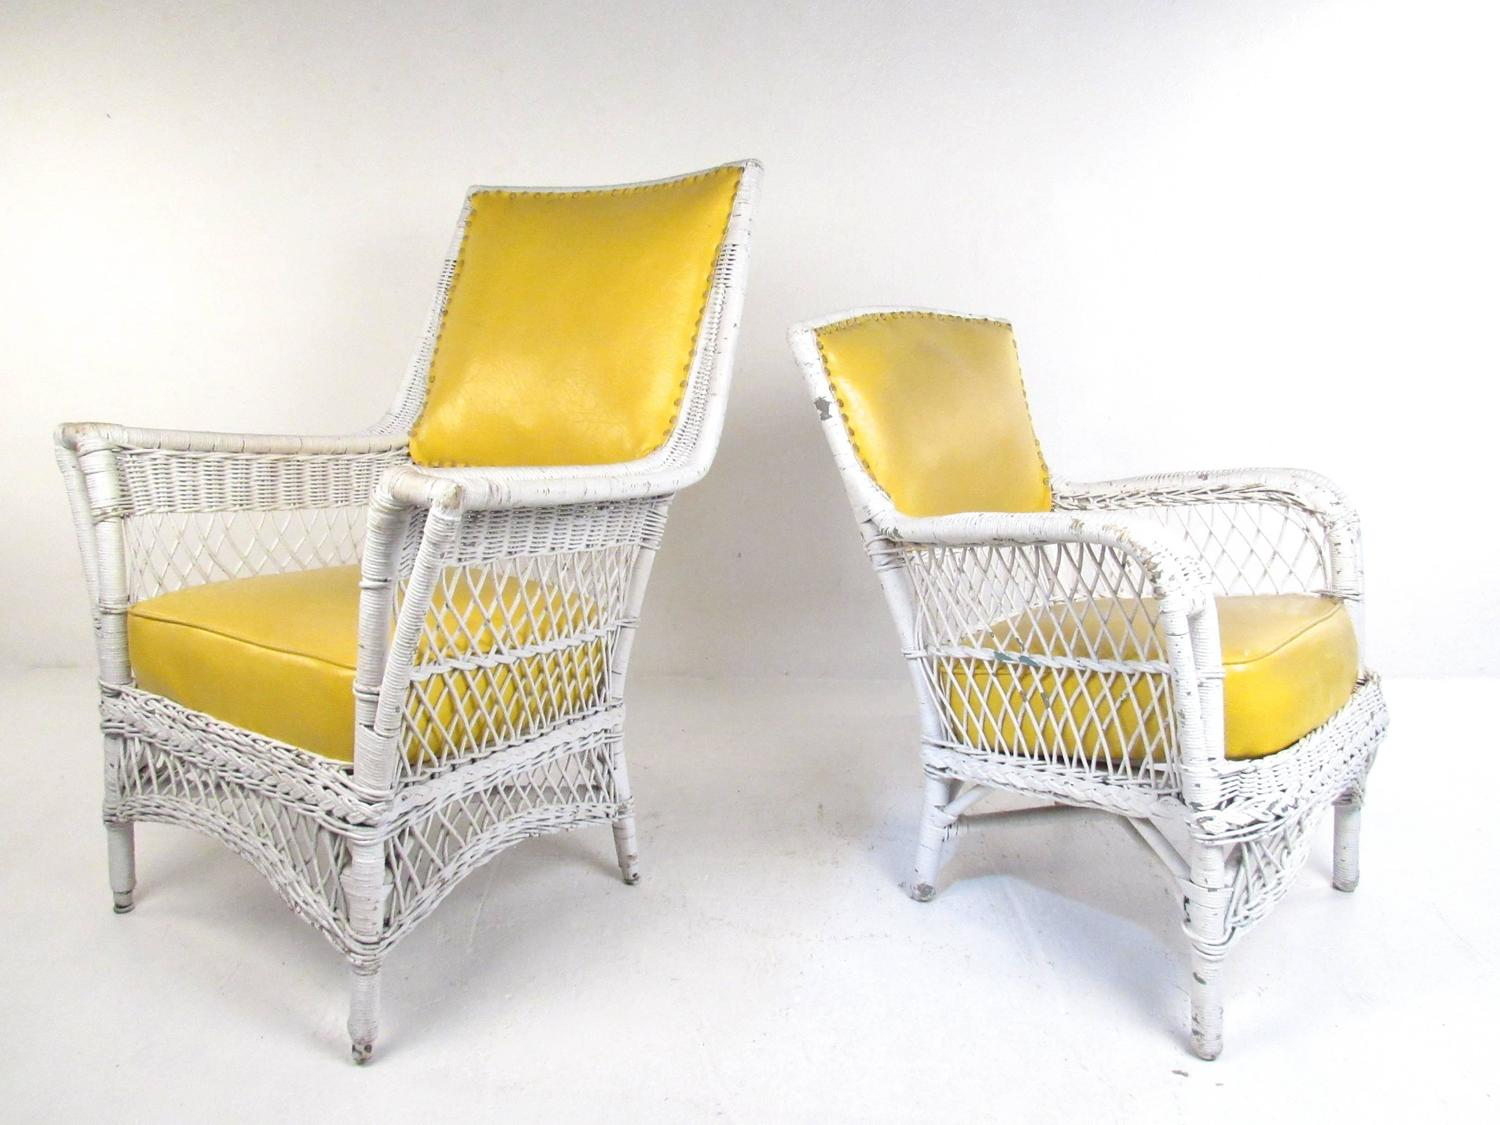 oversized rocking chair cushions thomasville dining chairs set of six vintage wicker and vinyl chairs, mid-century modern patio seating for sale at 1stdibs